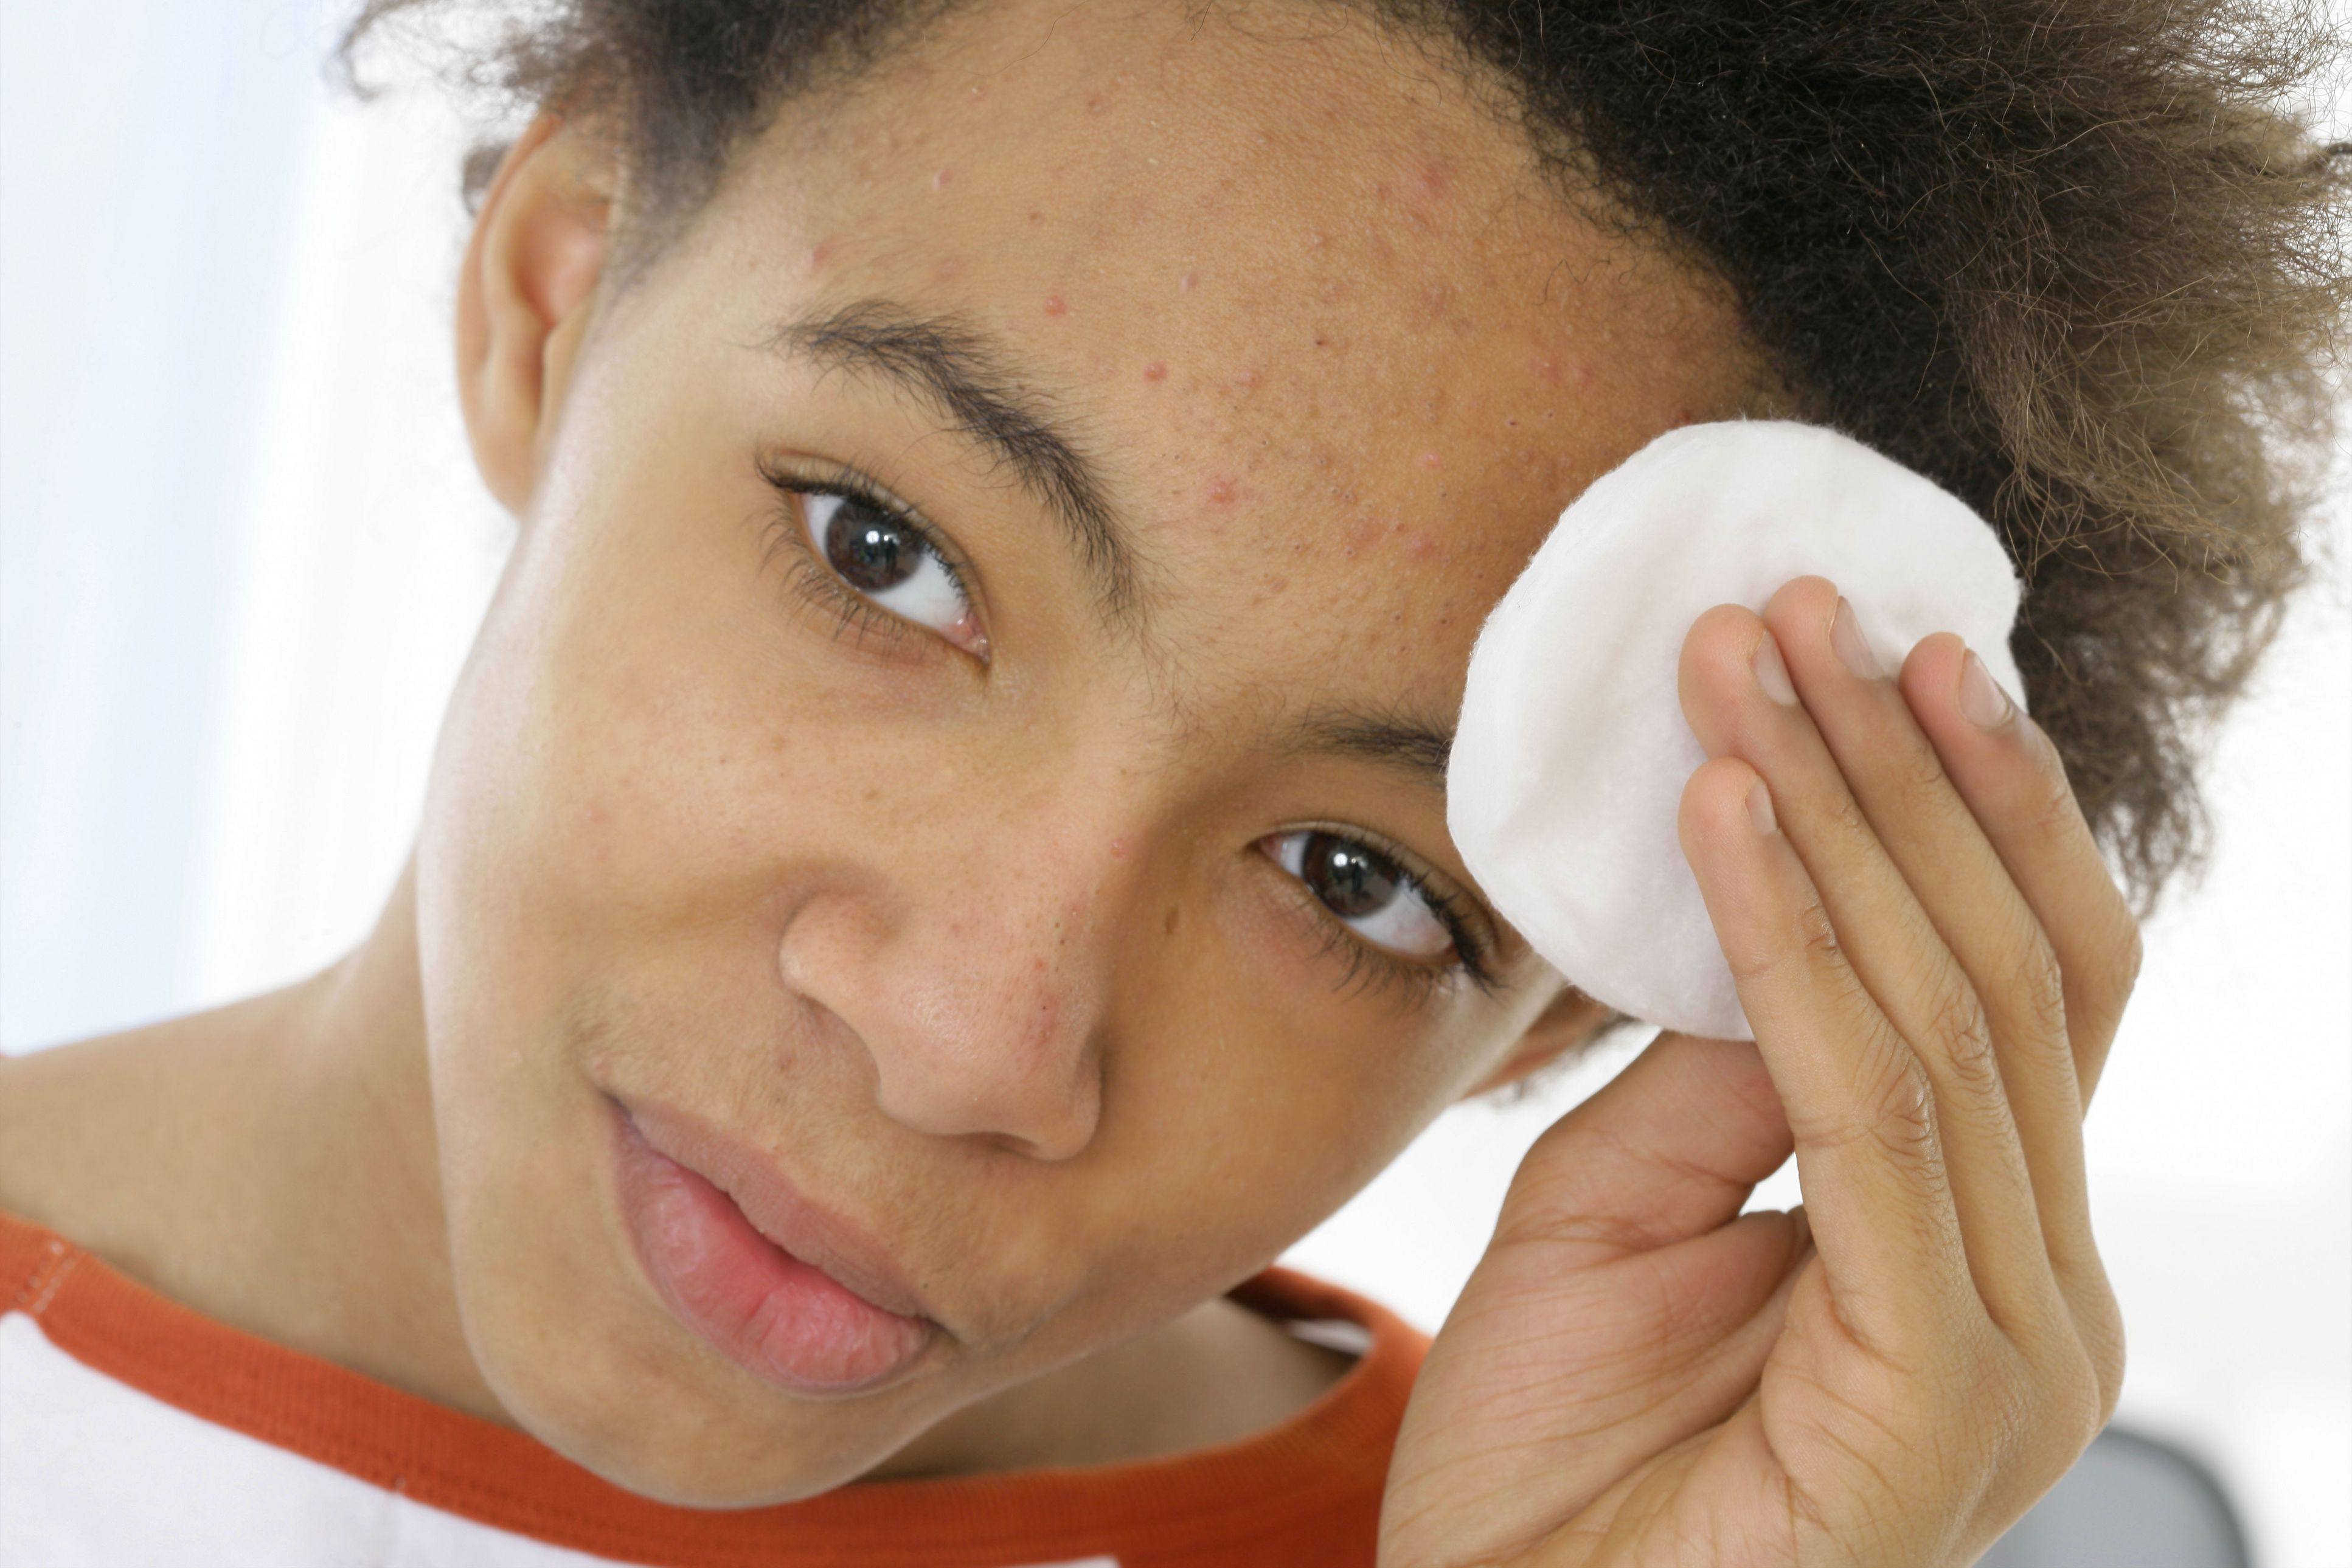 how to get rid of pimples in 5 minutes